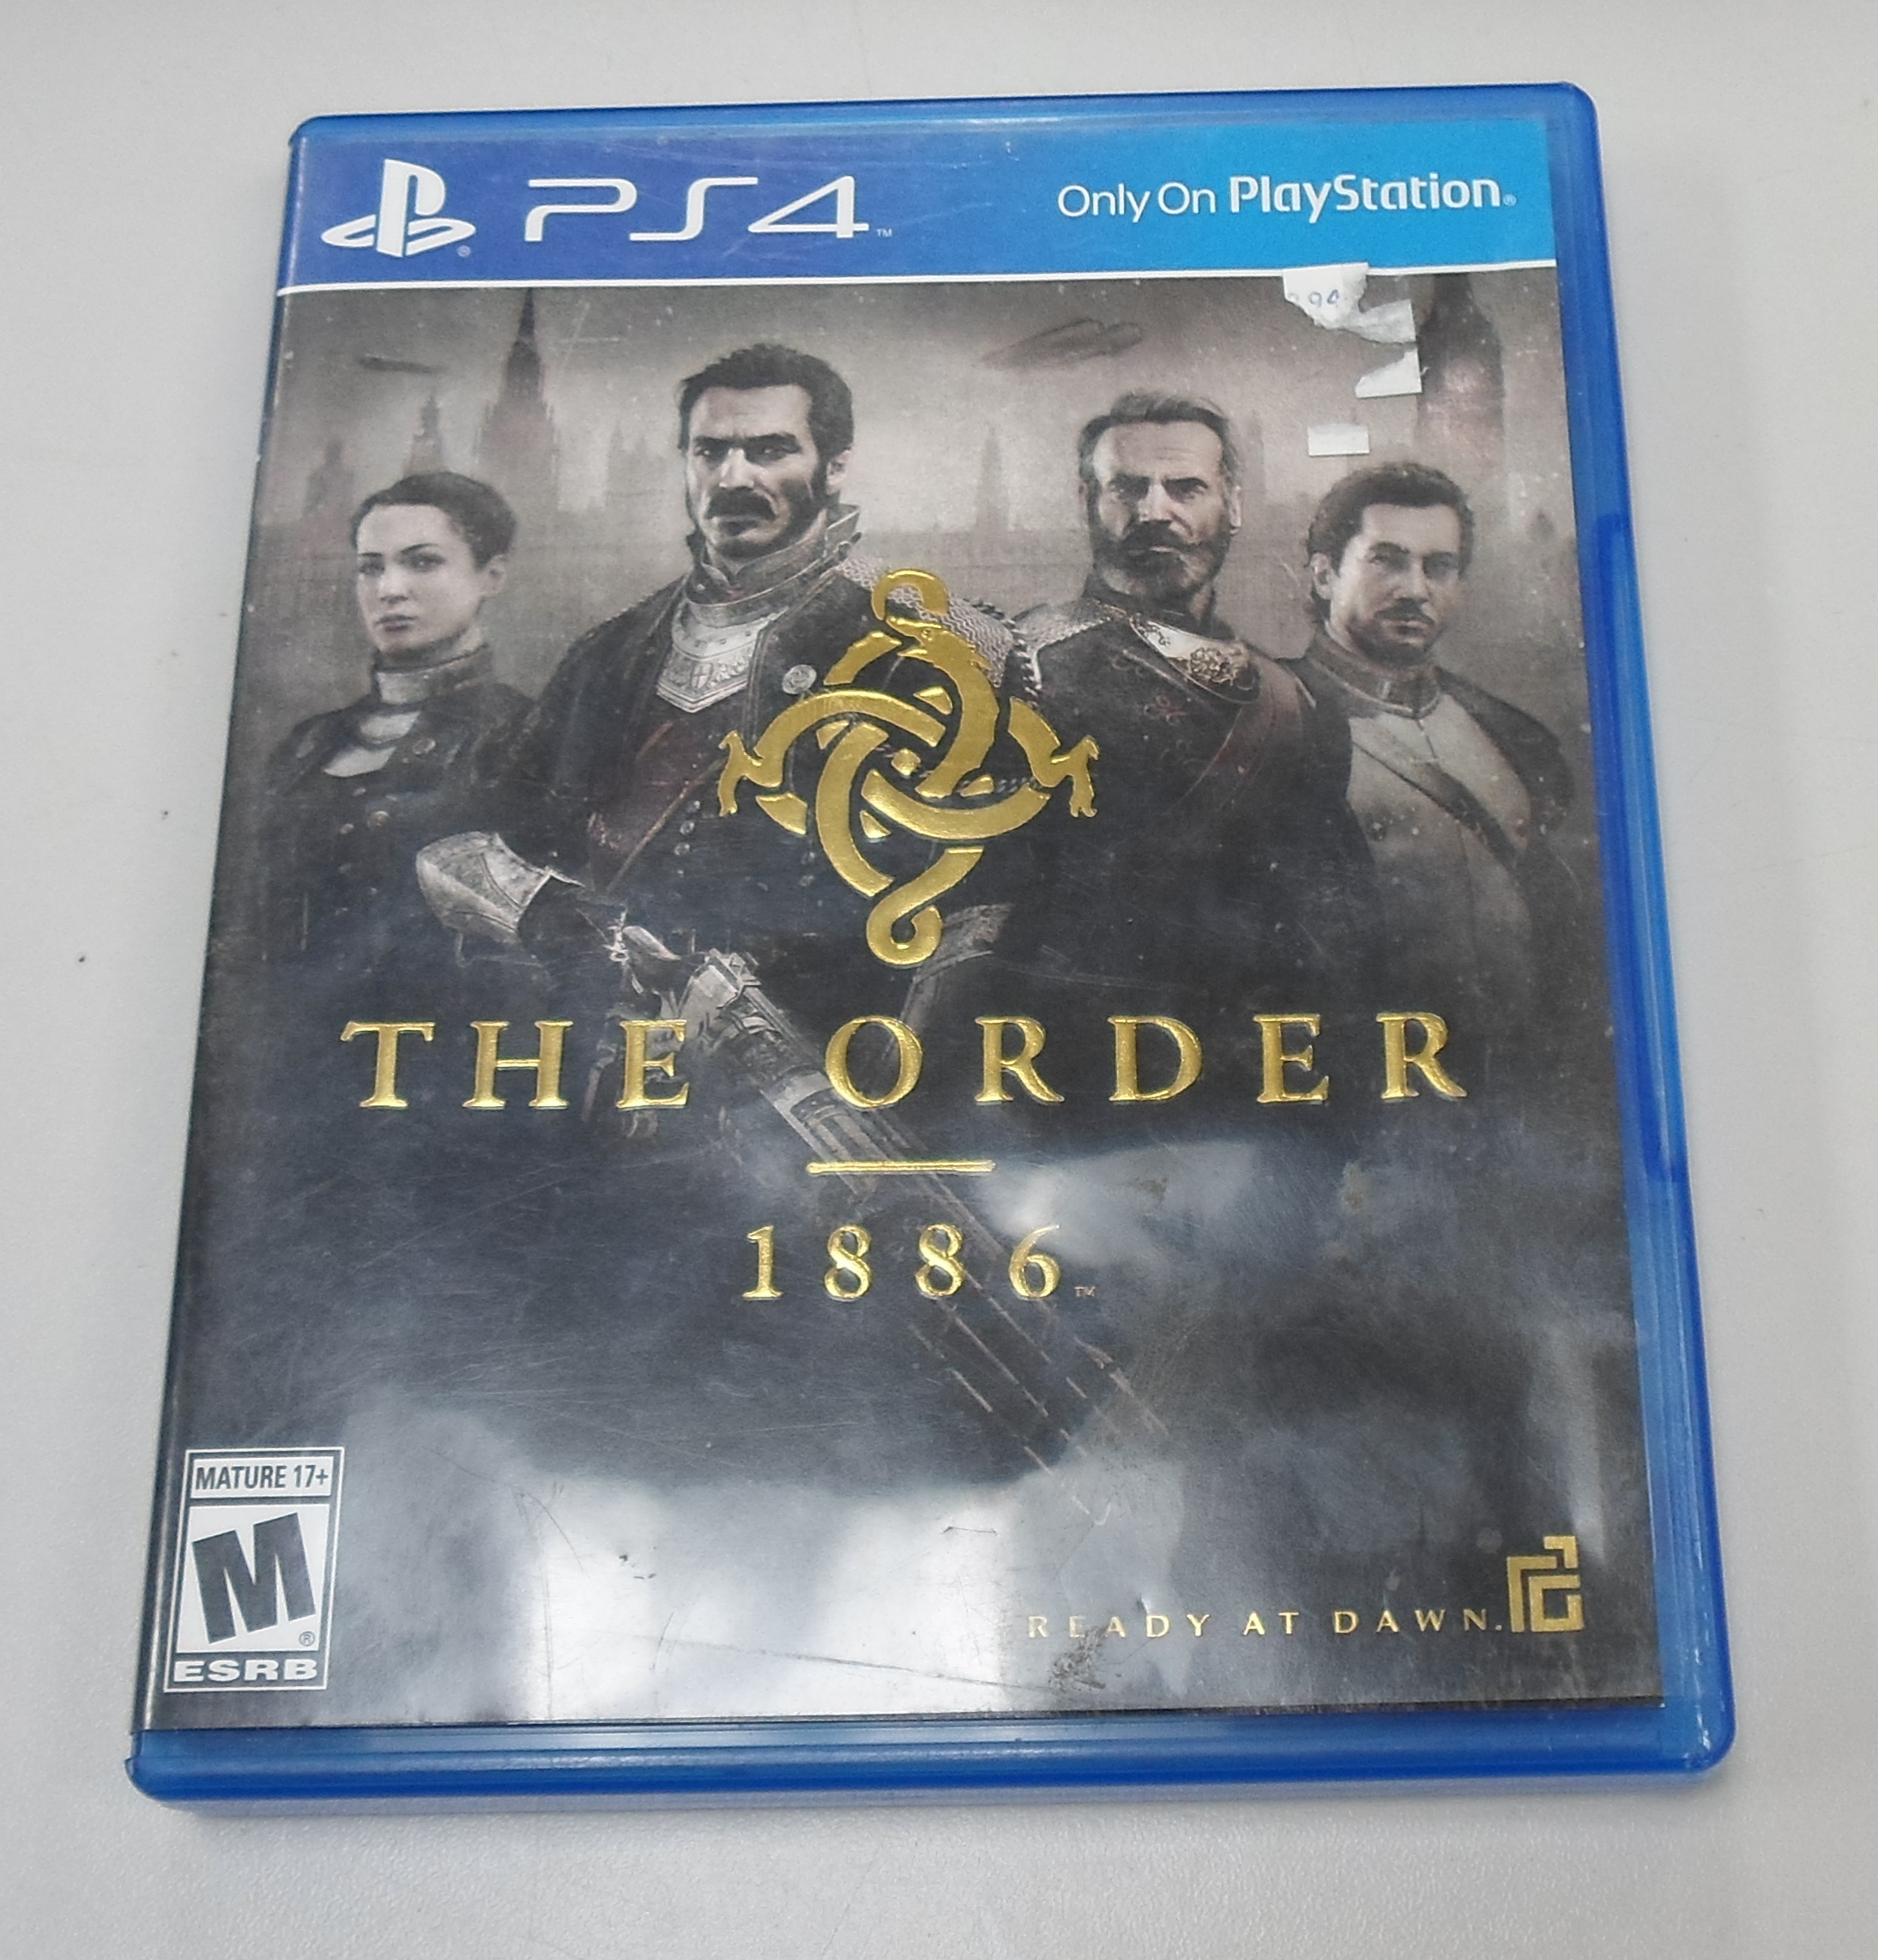 THE ORDER 1886  - PS 4 GAME